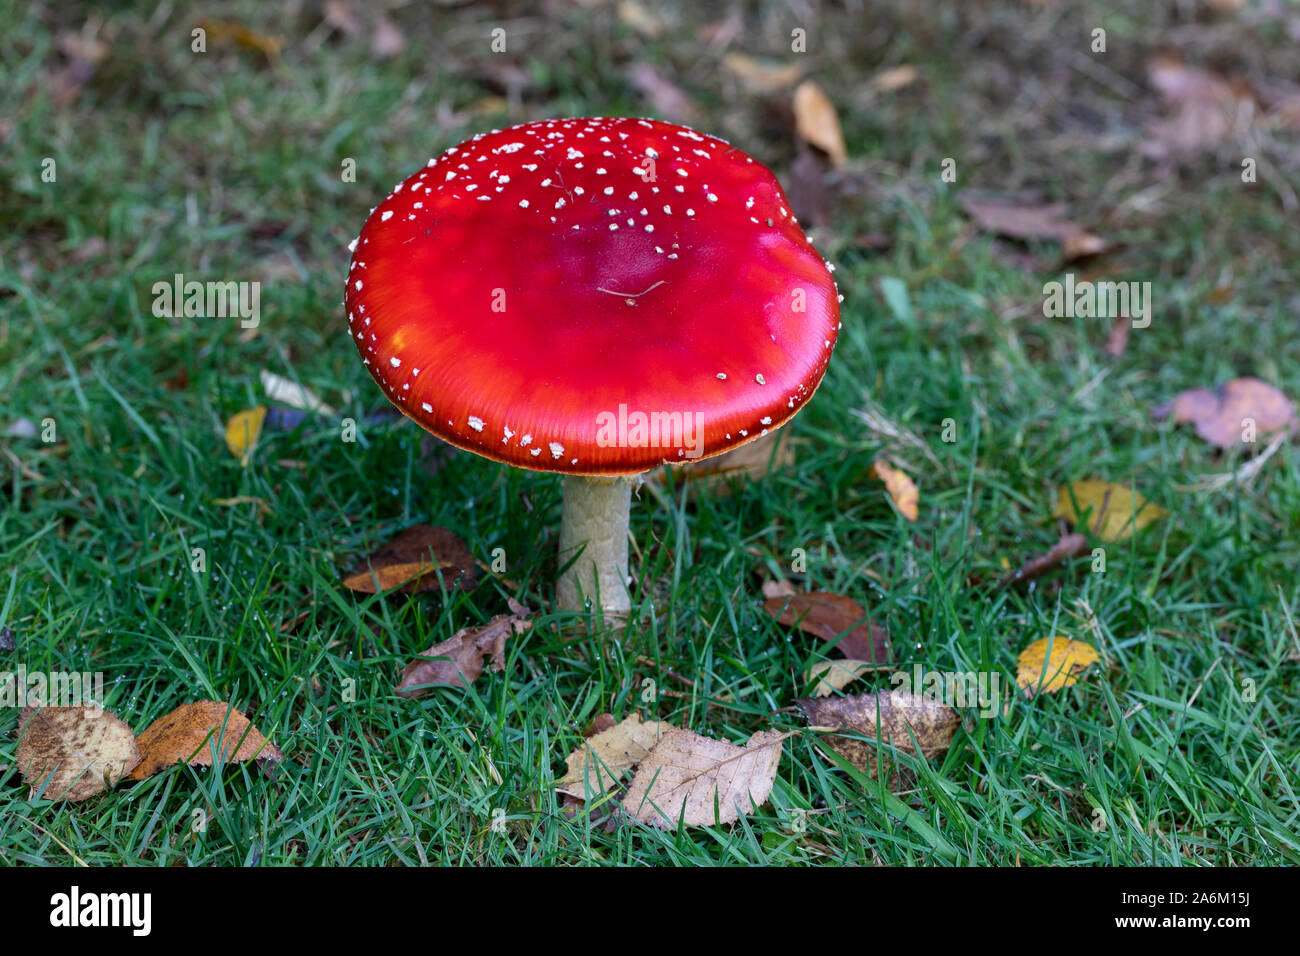 Close up of a single red Fly agaric mushroom - Amanita muscaria. A toxic toadstool growing in the grasss at Westonbirt, UK Stock Photo